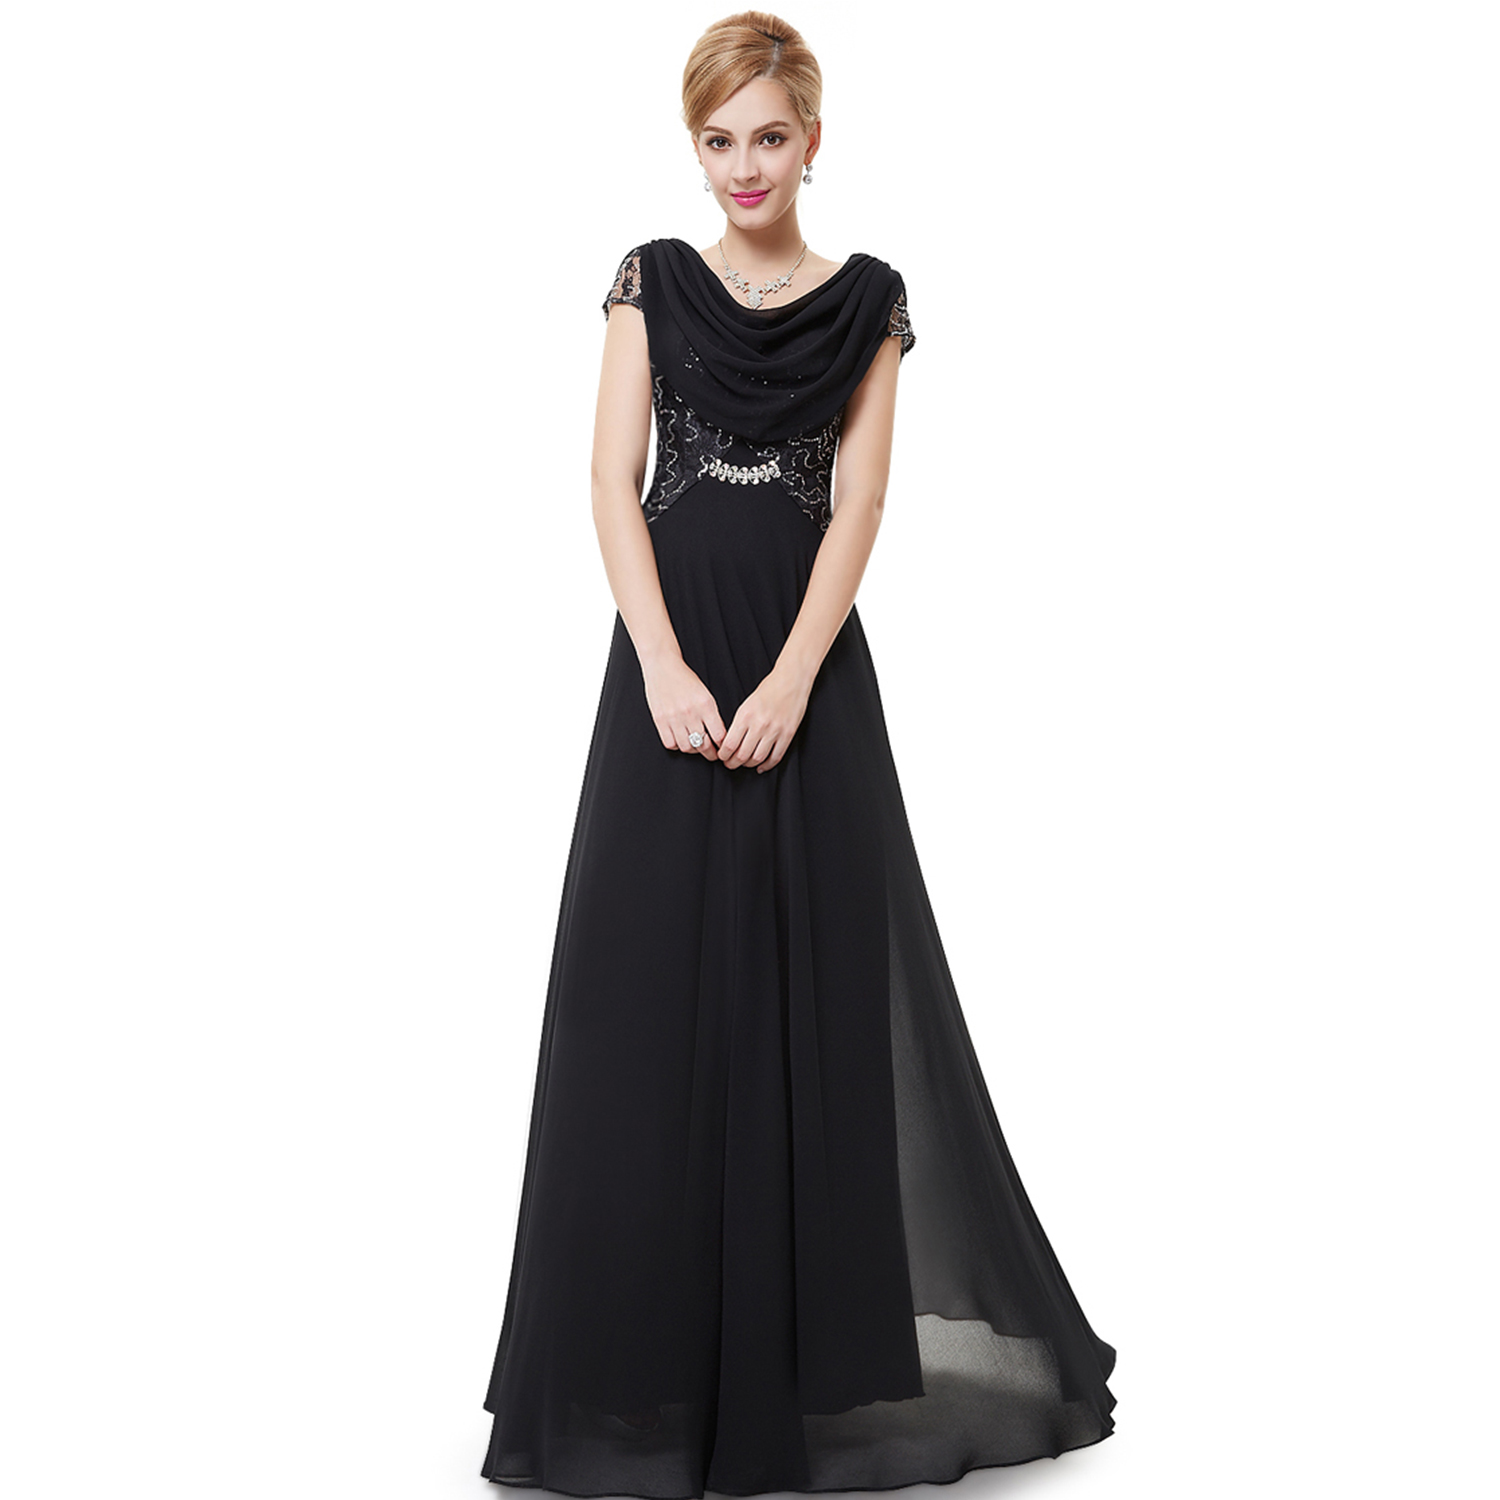 Long Cocktail Women Long Formal Evening Party Dress Cocktail Prom Dress